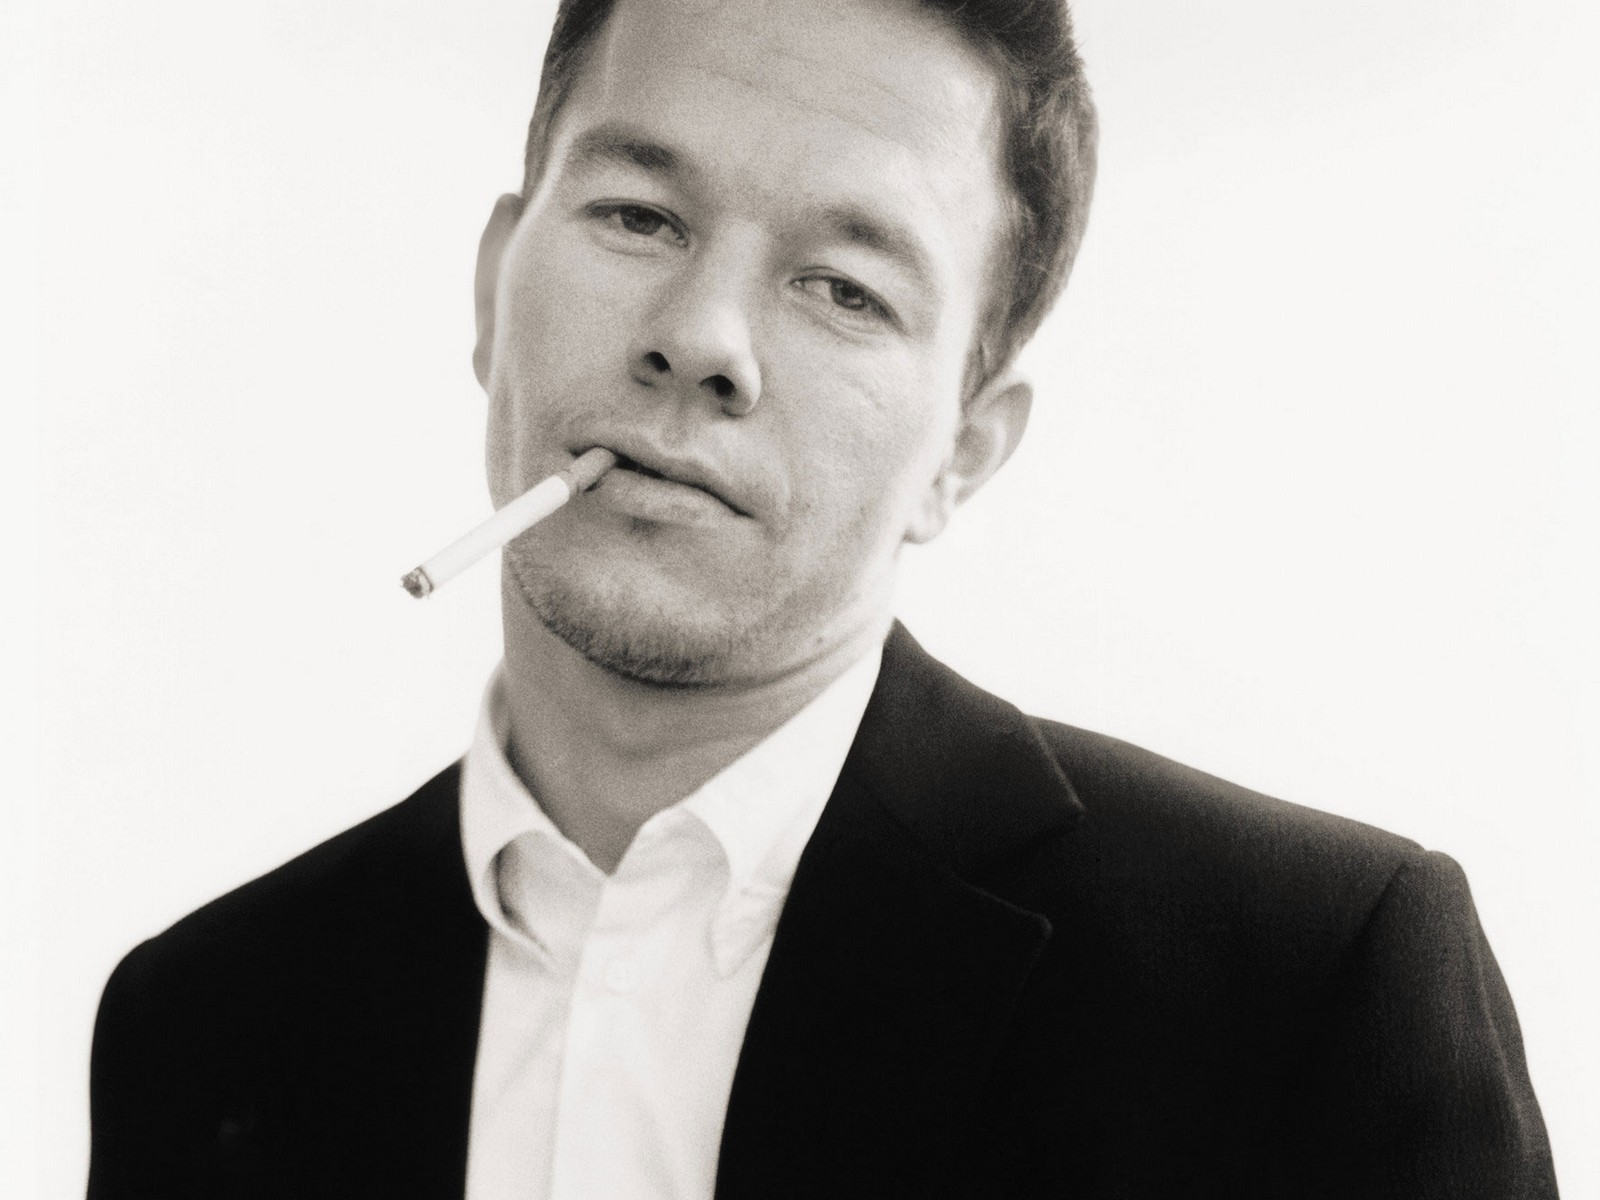 1600x1200 - Mark Wahlberg Wallpapers 18